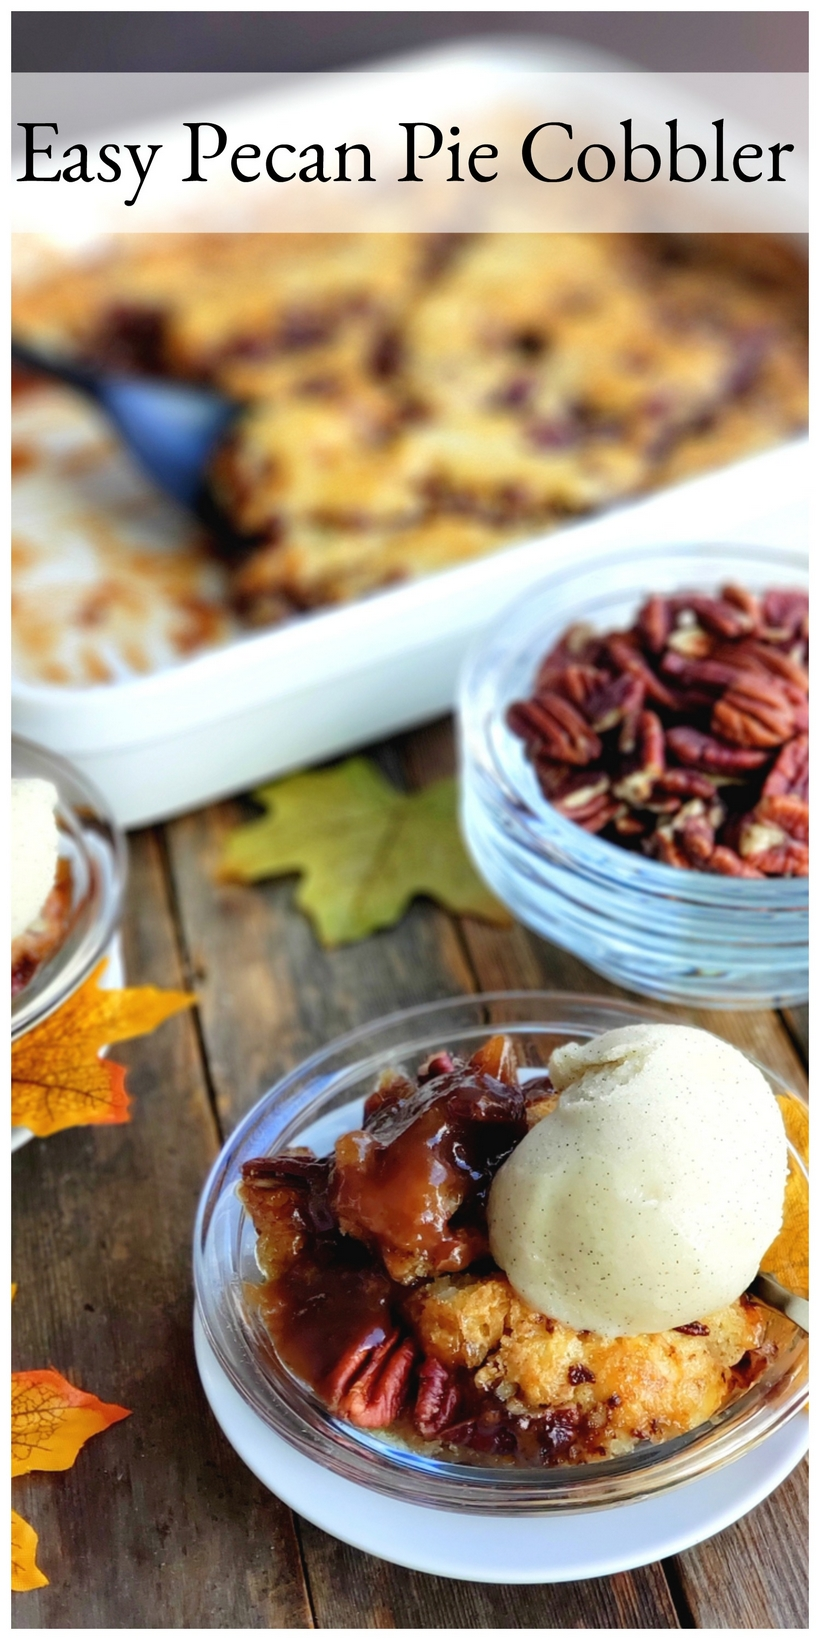 Easy pecan pie cobbler